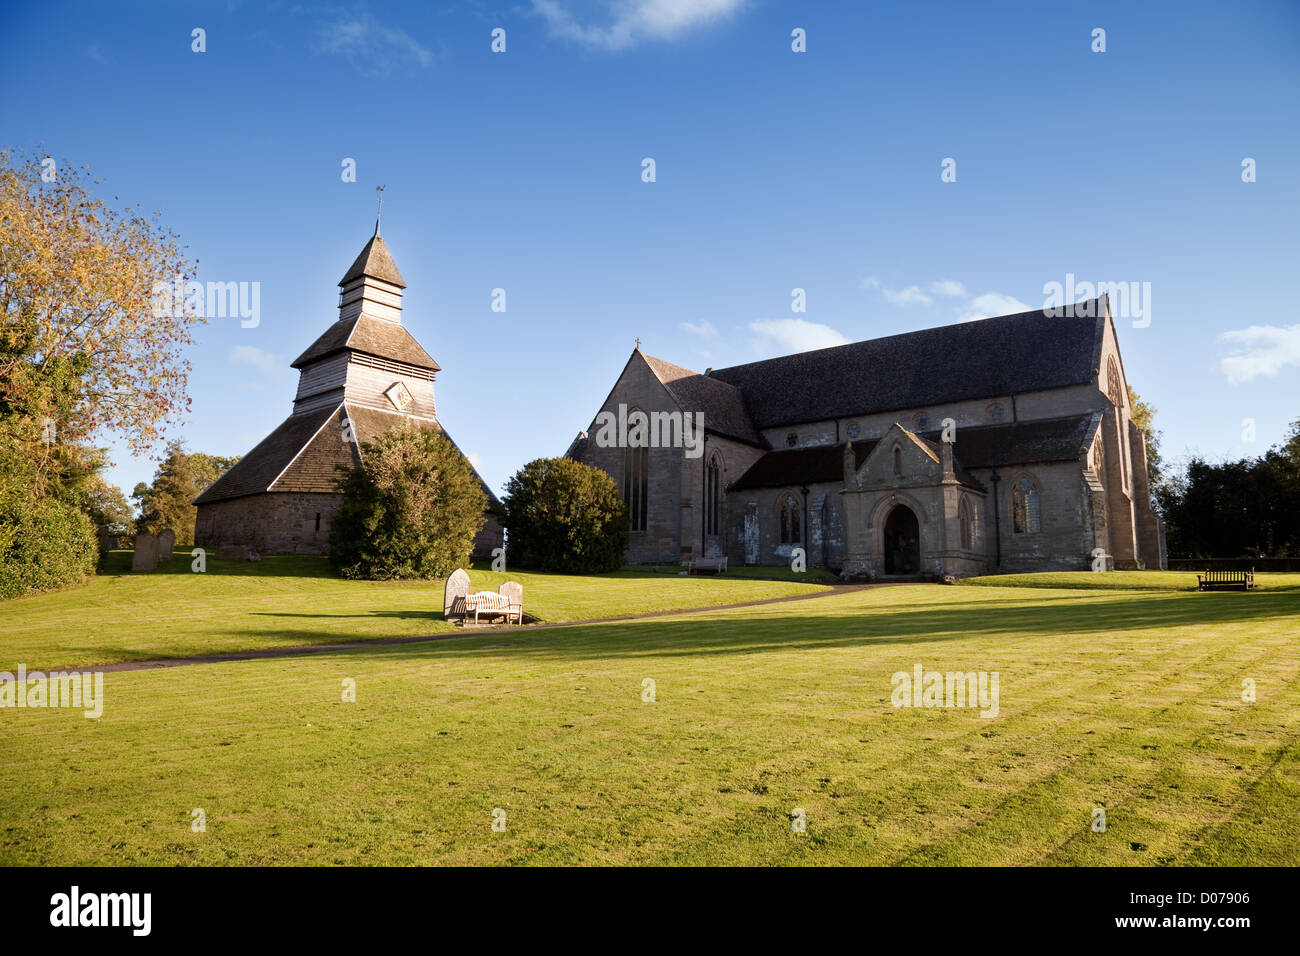 St Marys church Pembridge, a 14th century building with a separate  belltower,  Herefordshire UK - Stock Image